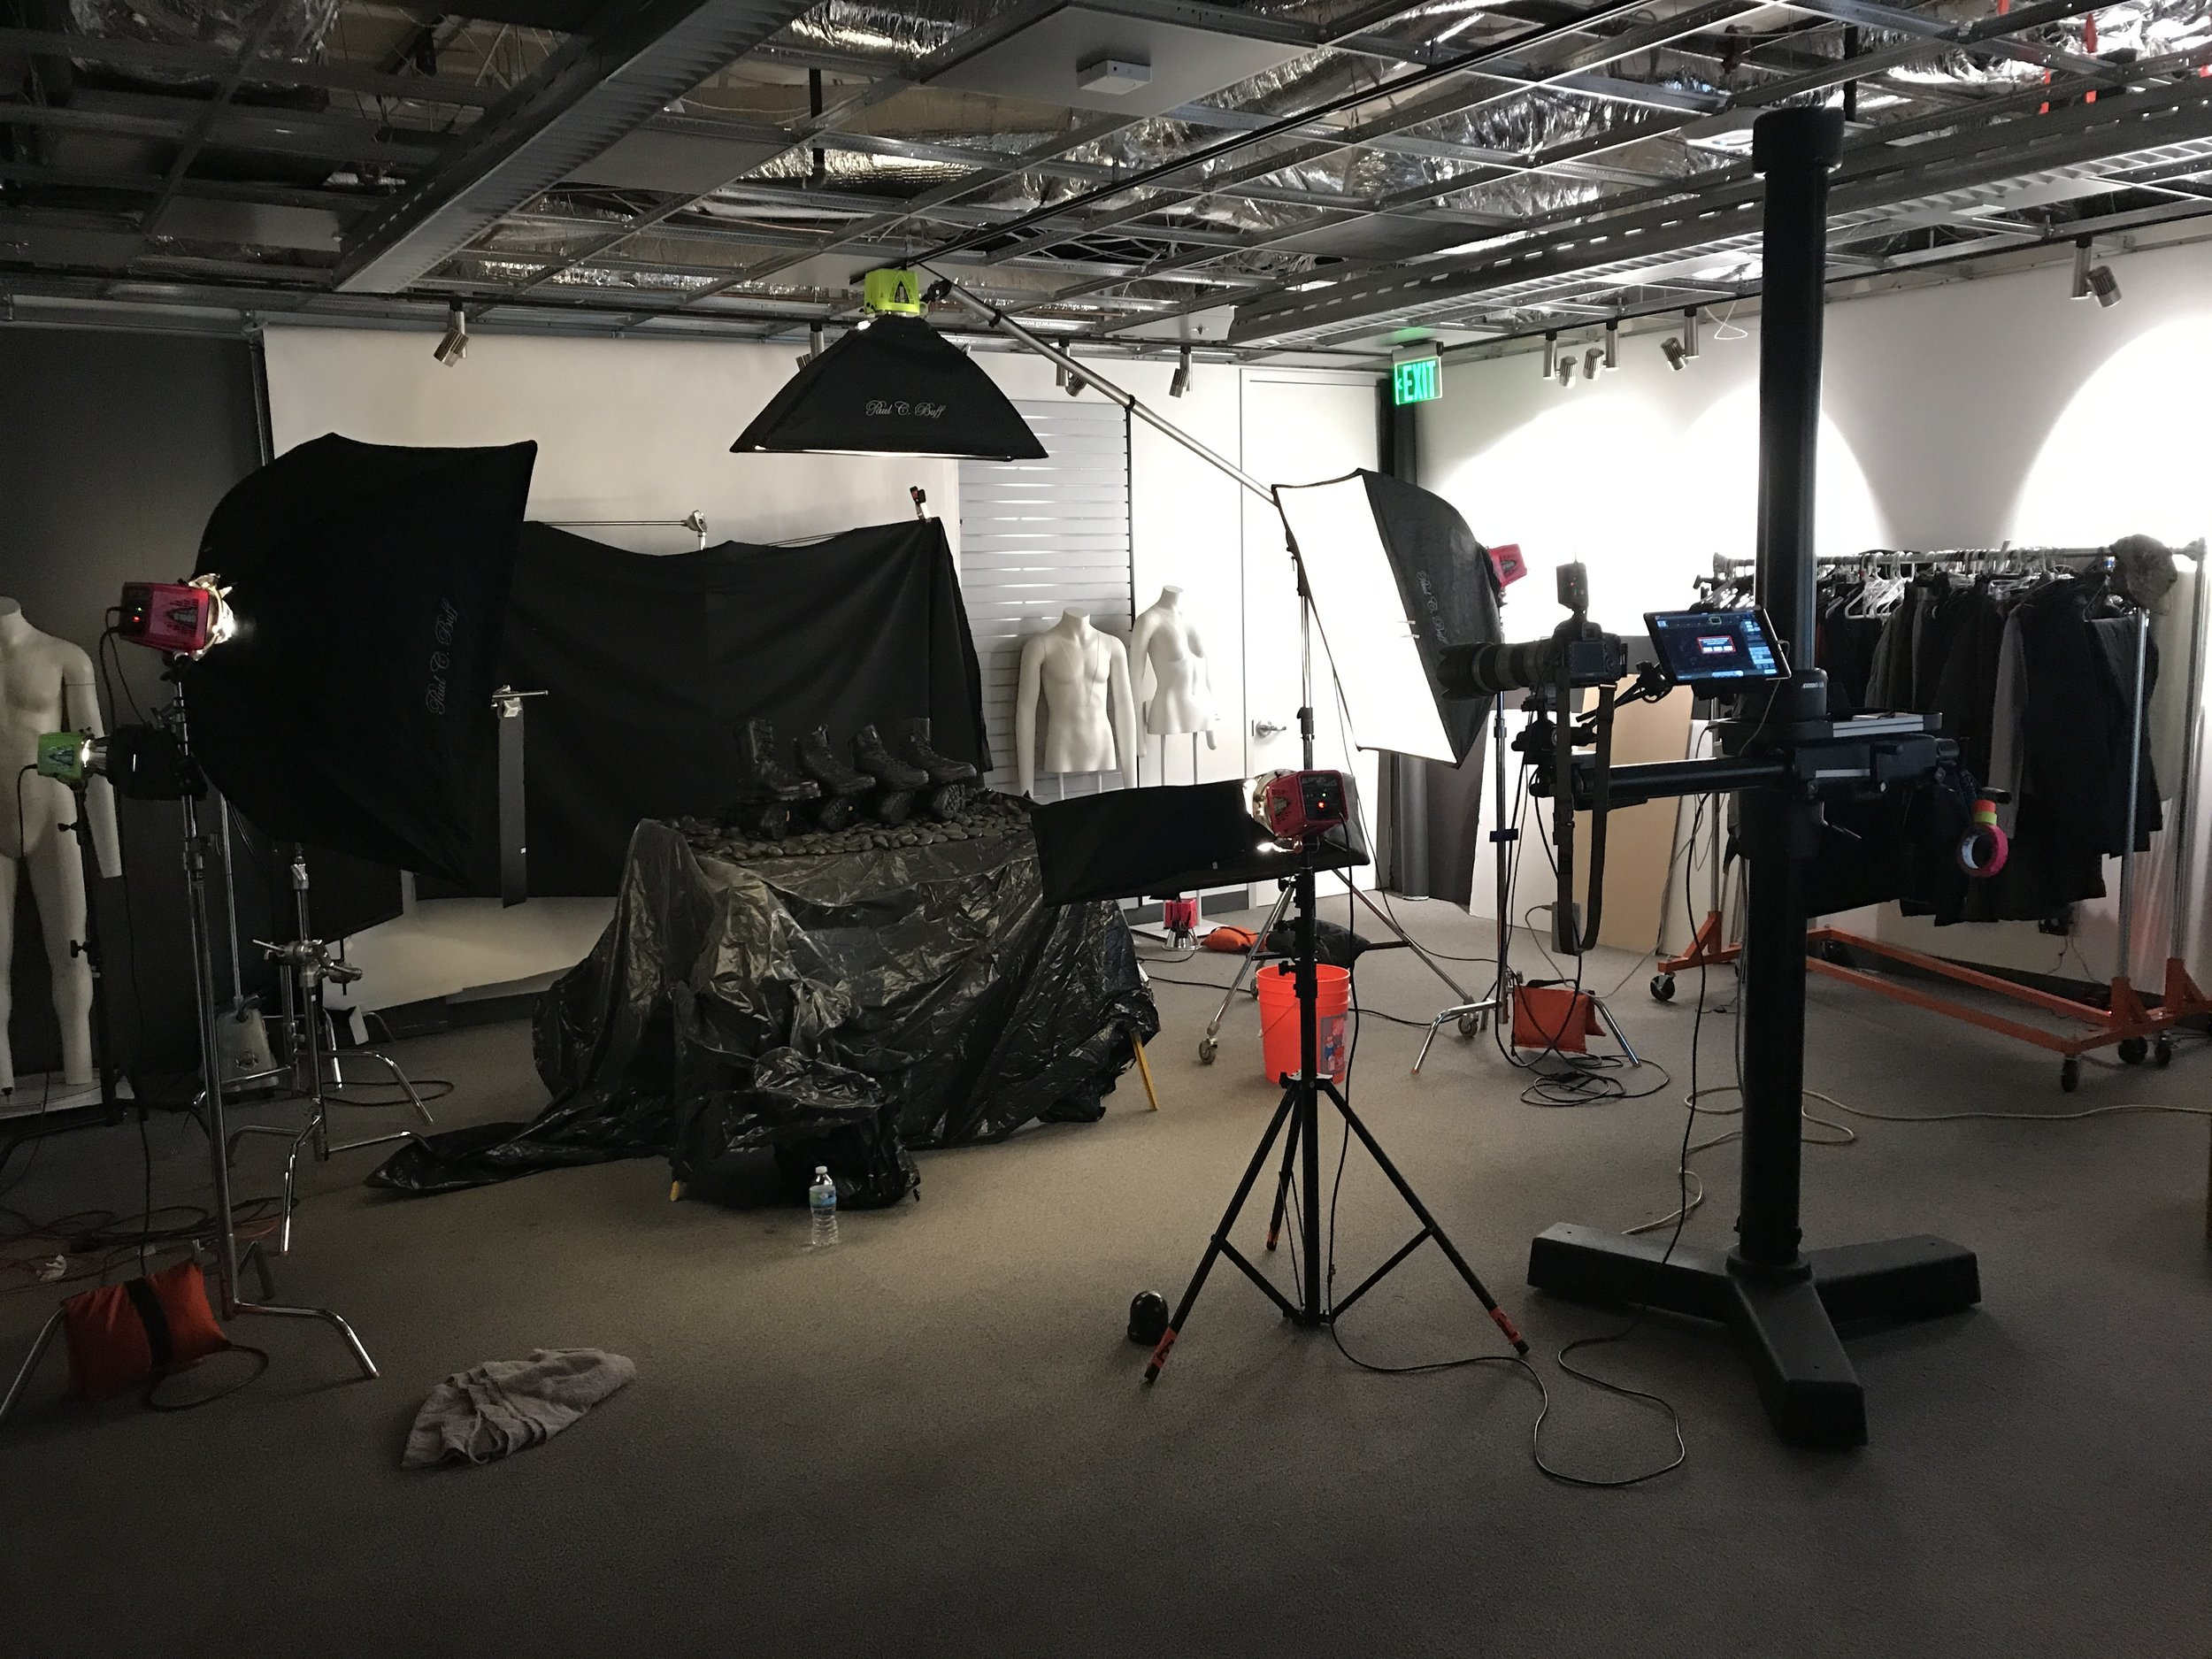 The setup was two medium softboxes (one on each side), one narrow box up front (turned way down) and one overhead narrow box, plus a kicker behind barndoors and flags on the left.